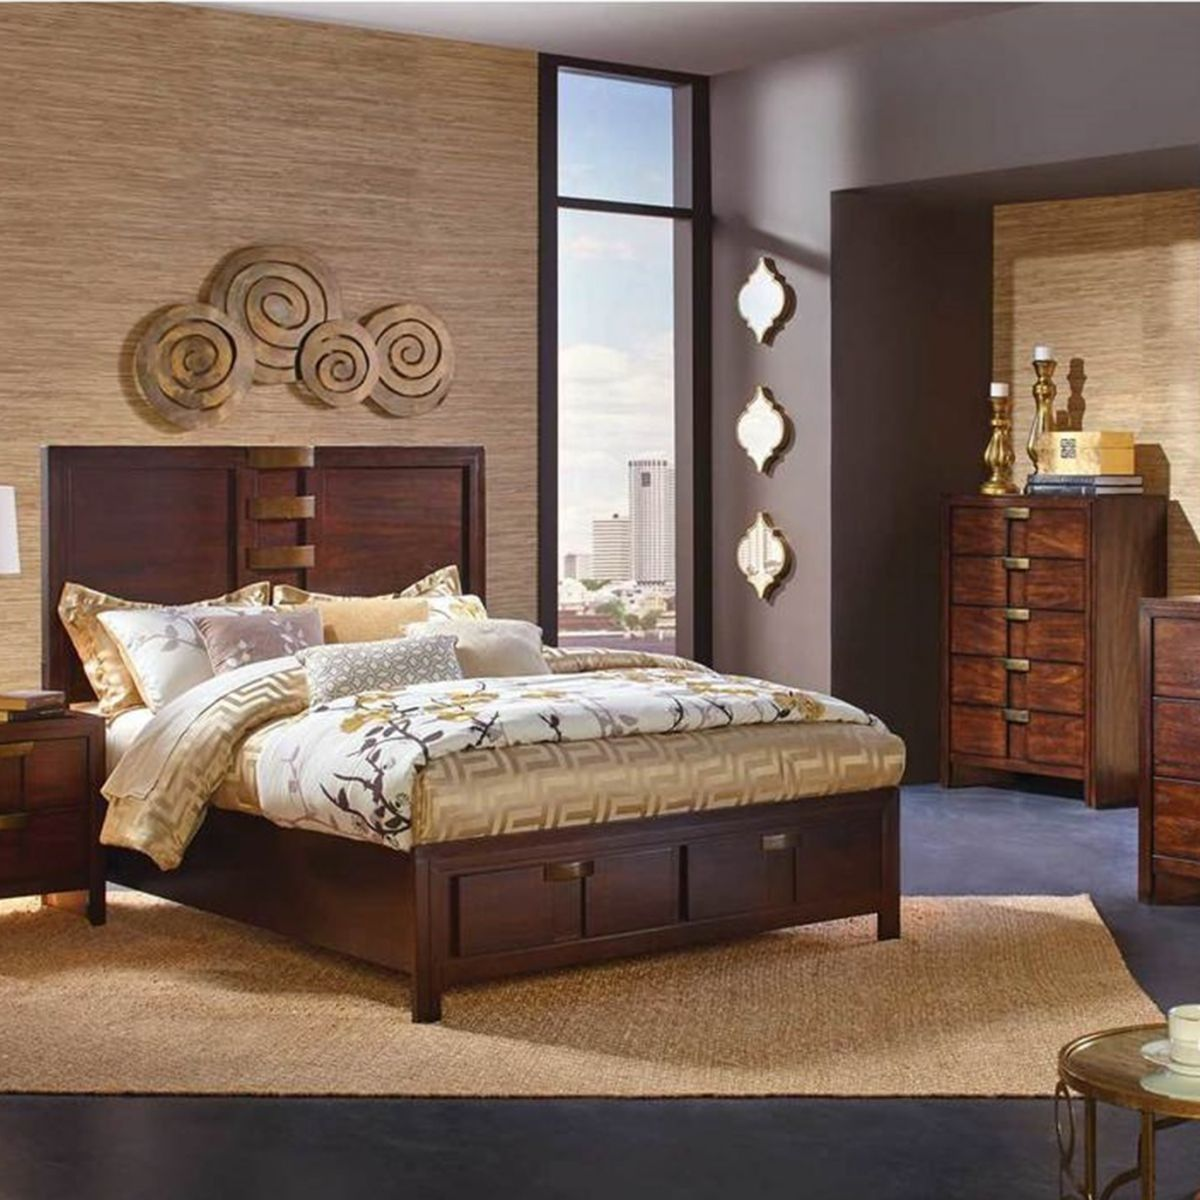 Diplomat Chestnut 5 Pc King Bedroom Bedroom Sets Furniture Queen Bedroom Sets King Bedroom